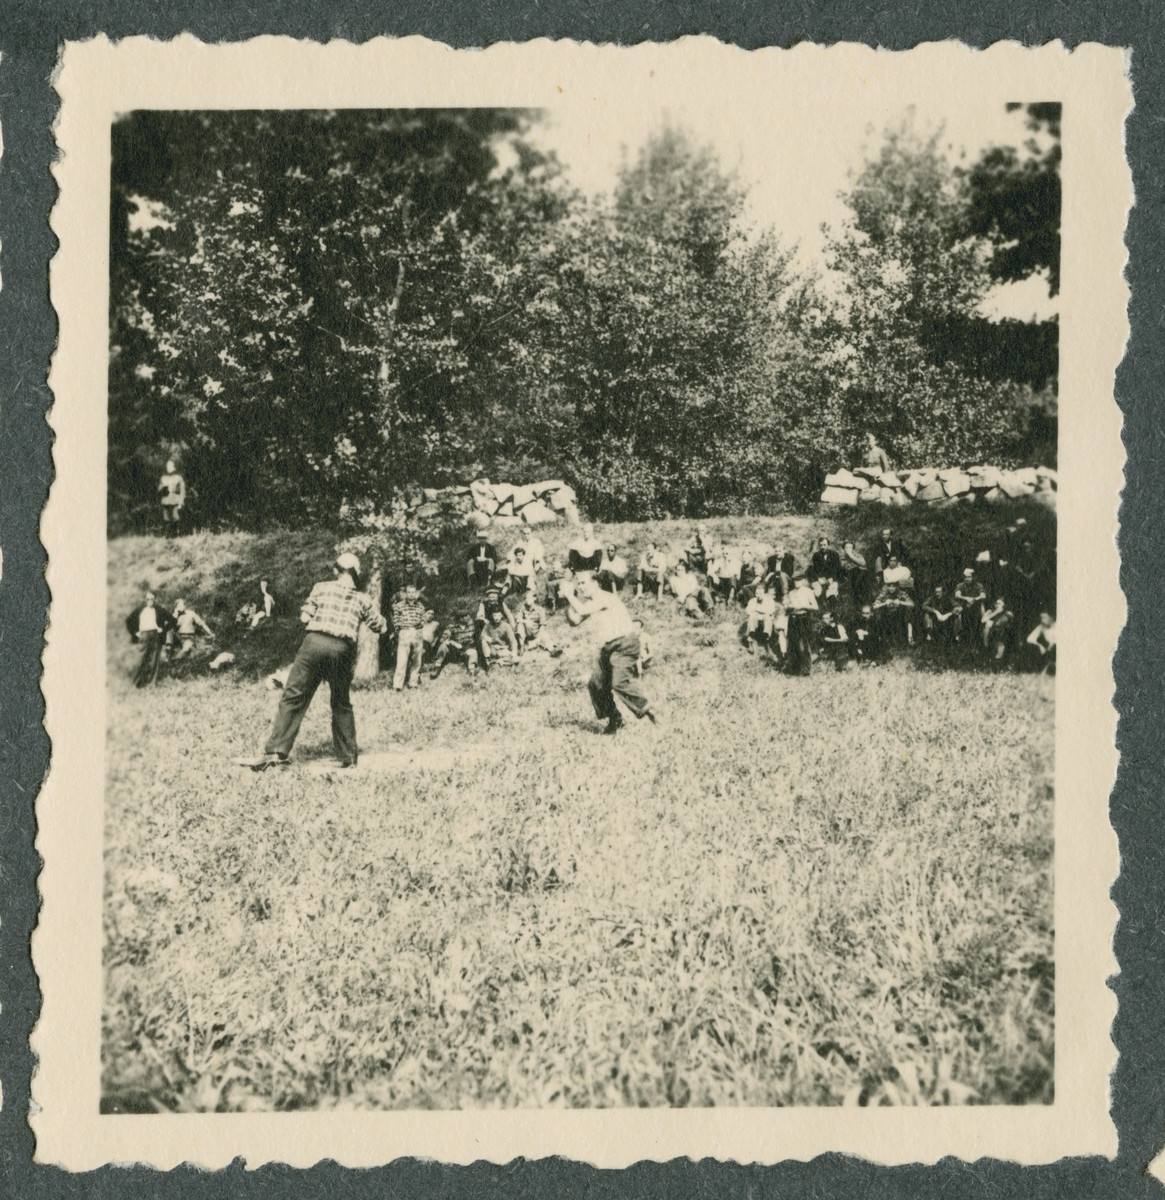 American prisoners play softball on the grounds of the Tittmoning camp while two armed guards watch from behind the hedge.  This was the first time that some of the prisoners from European countries had seen softball.